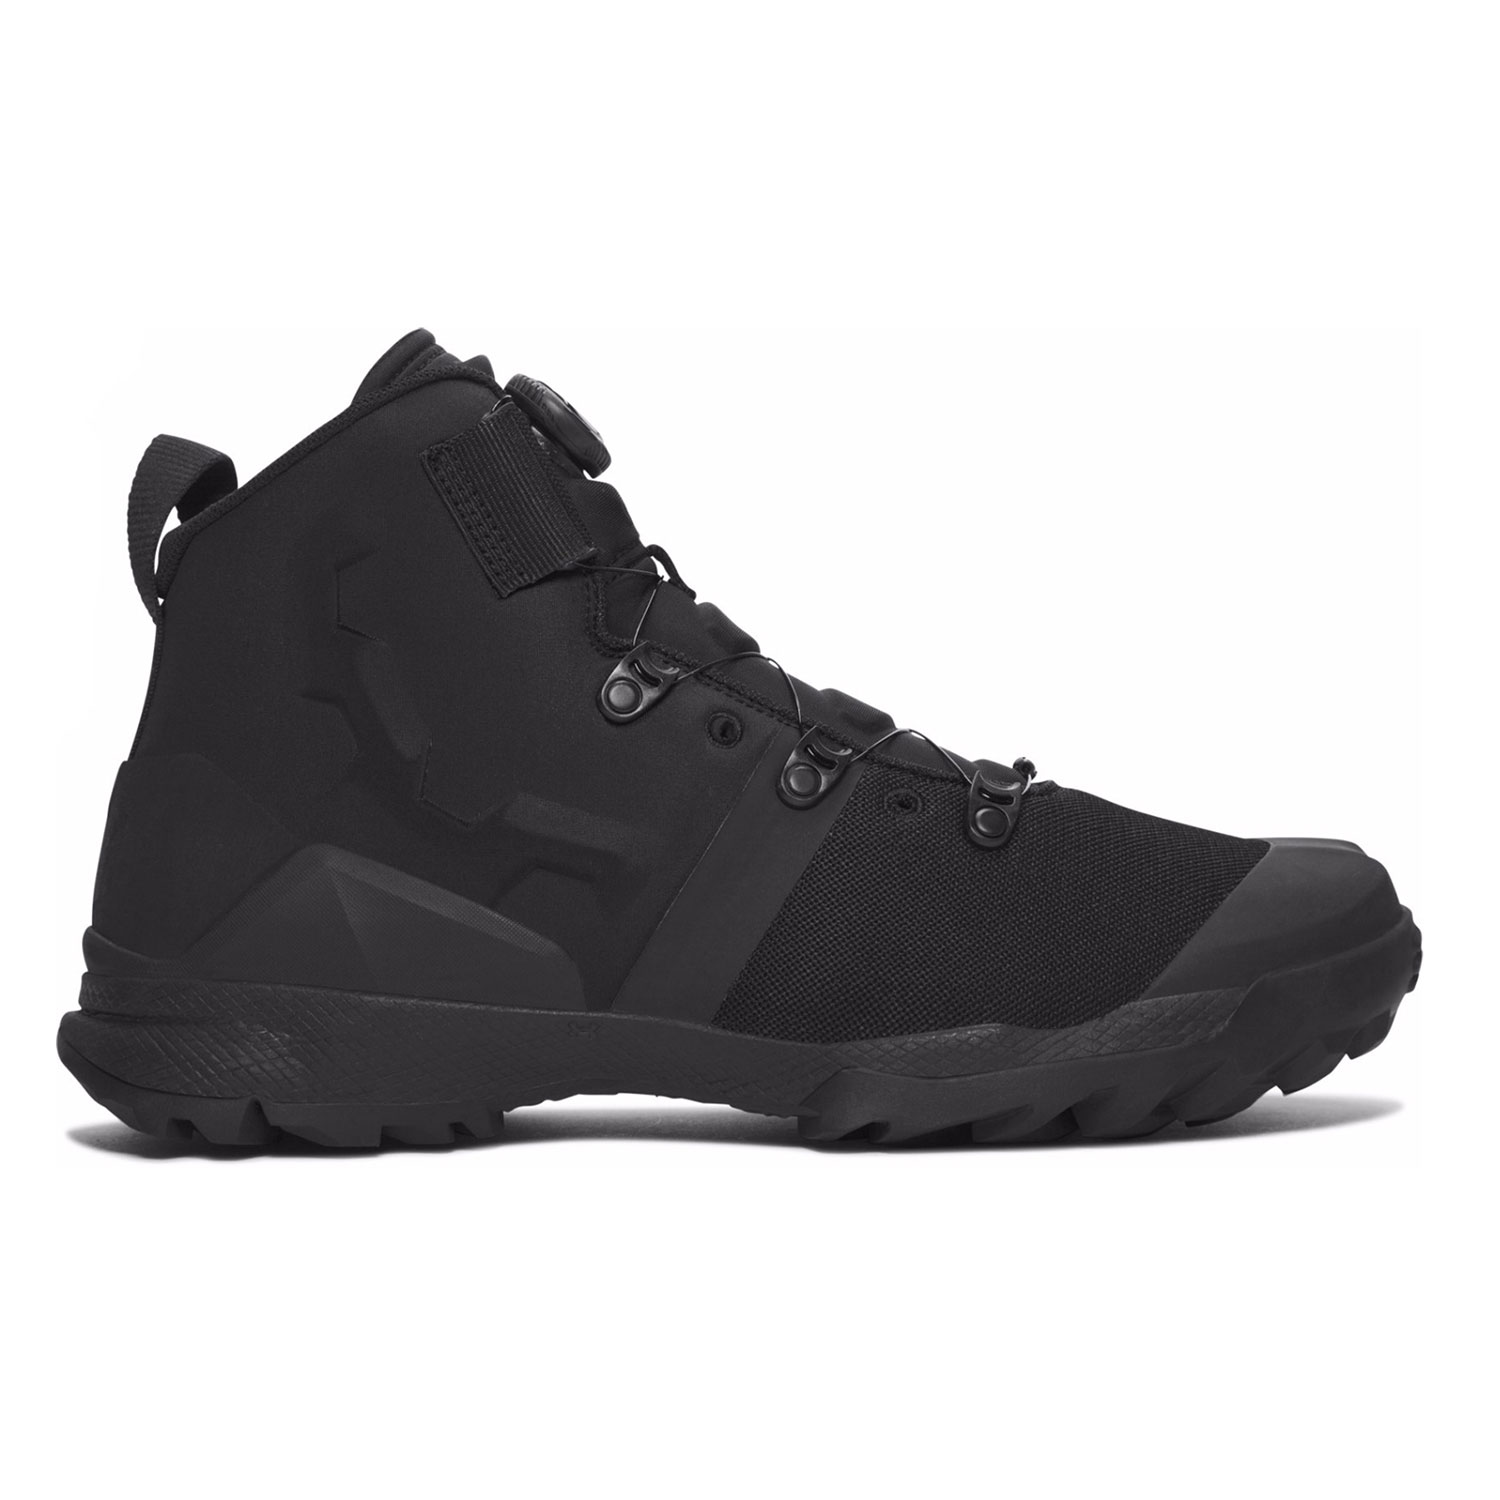 a21ae52b4d8 Under Armour Infil Tactical Boots.